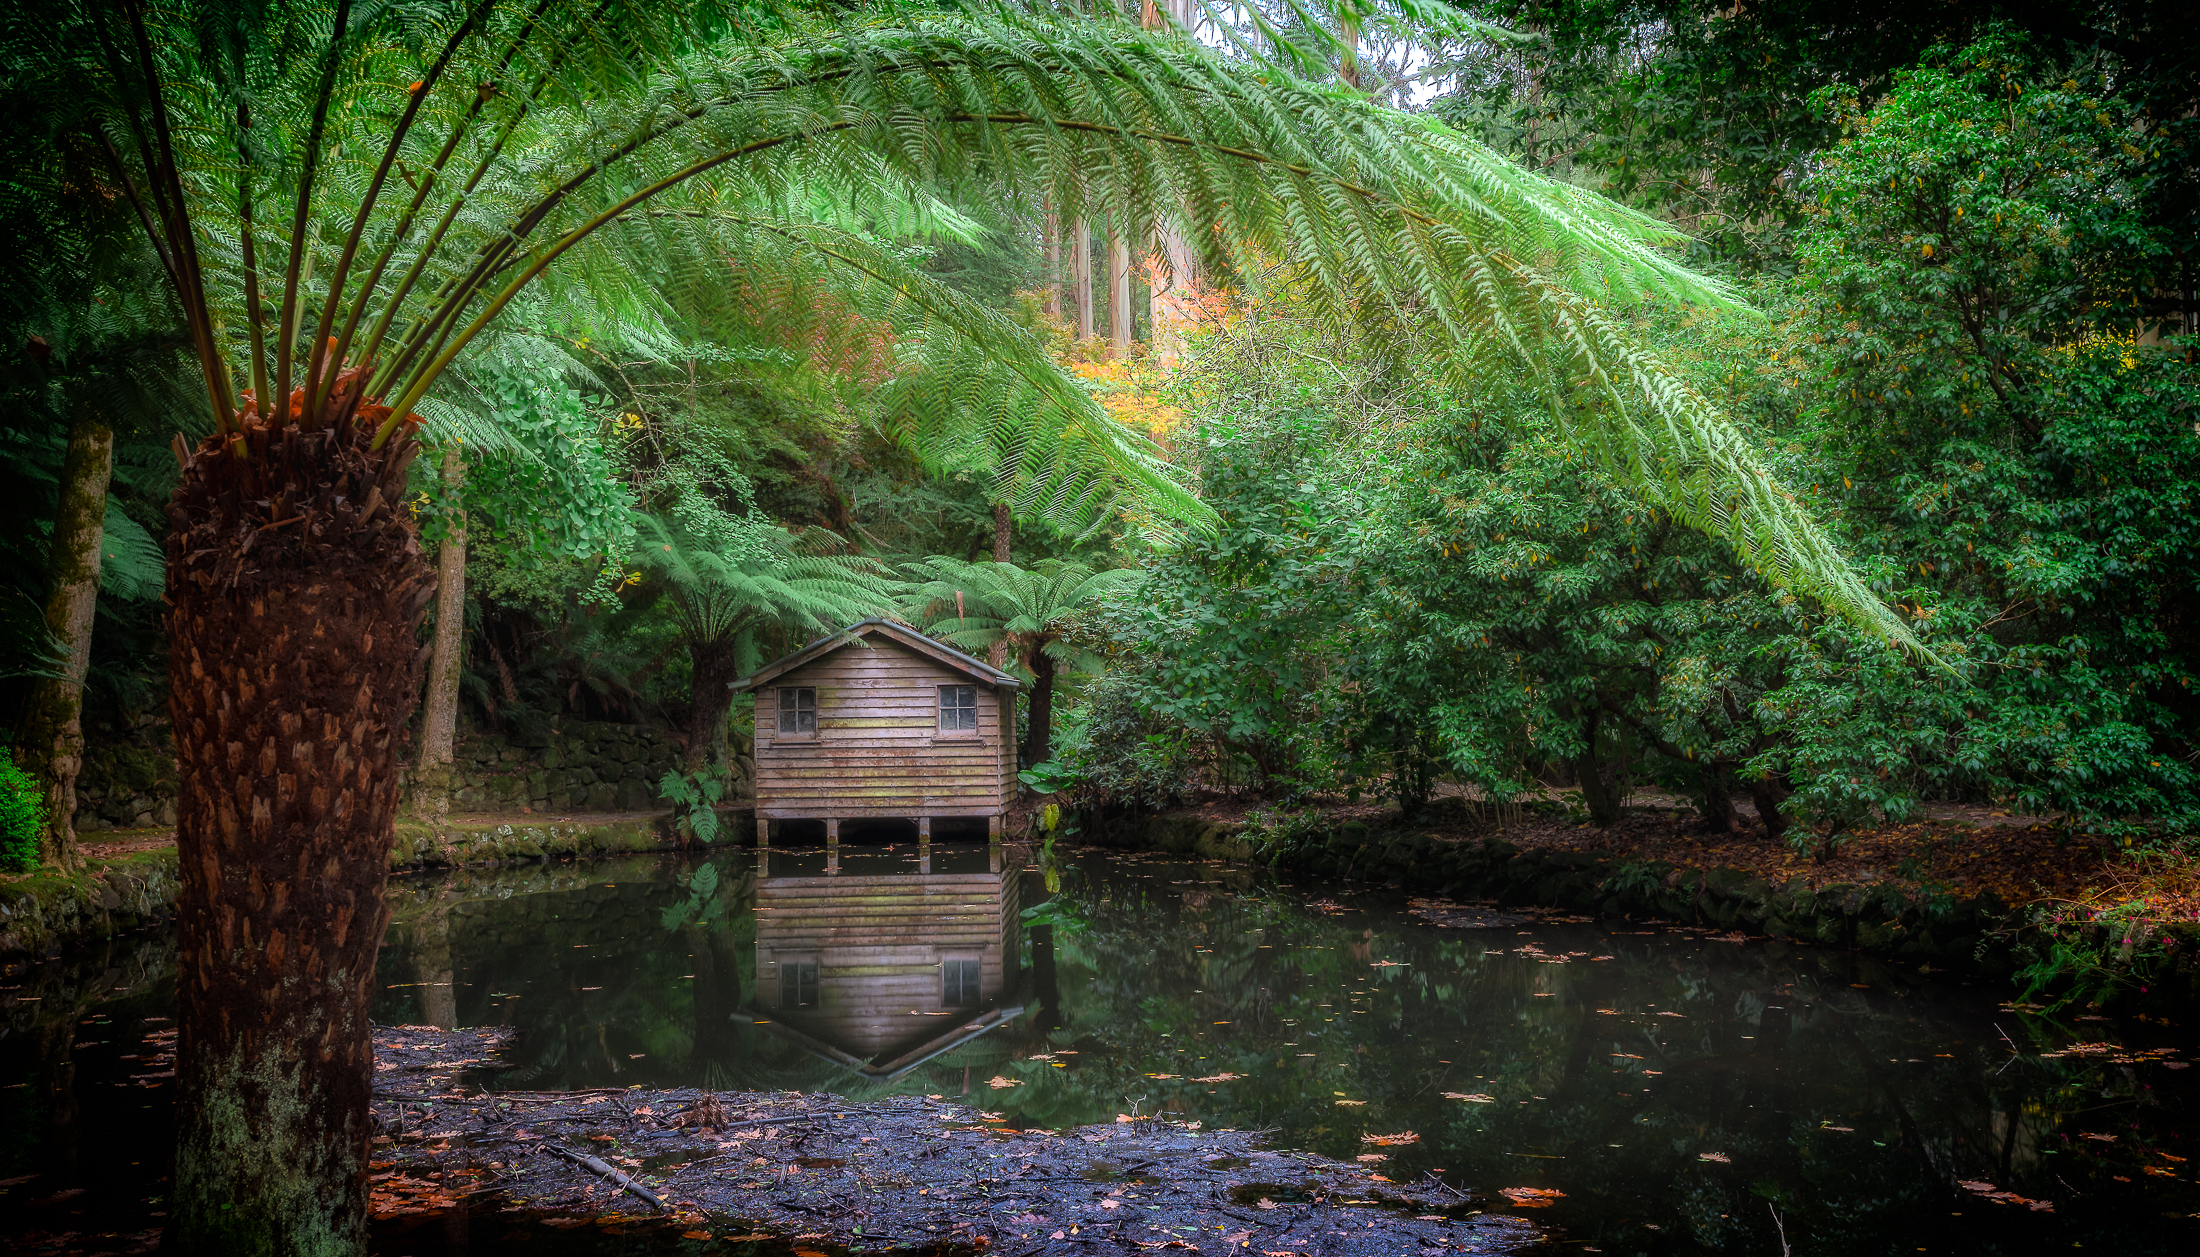 Autumn at the old boathouse on the lake at Alfred Nicholas Memorial Gardens (Sherbrooke, Victoria, Australia) - Photo by Paul Tadday